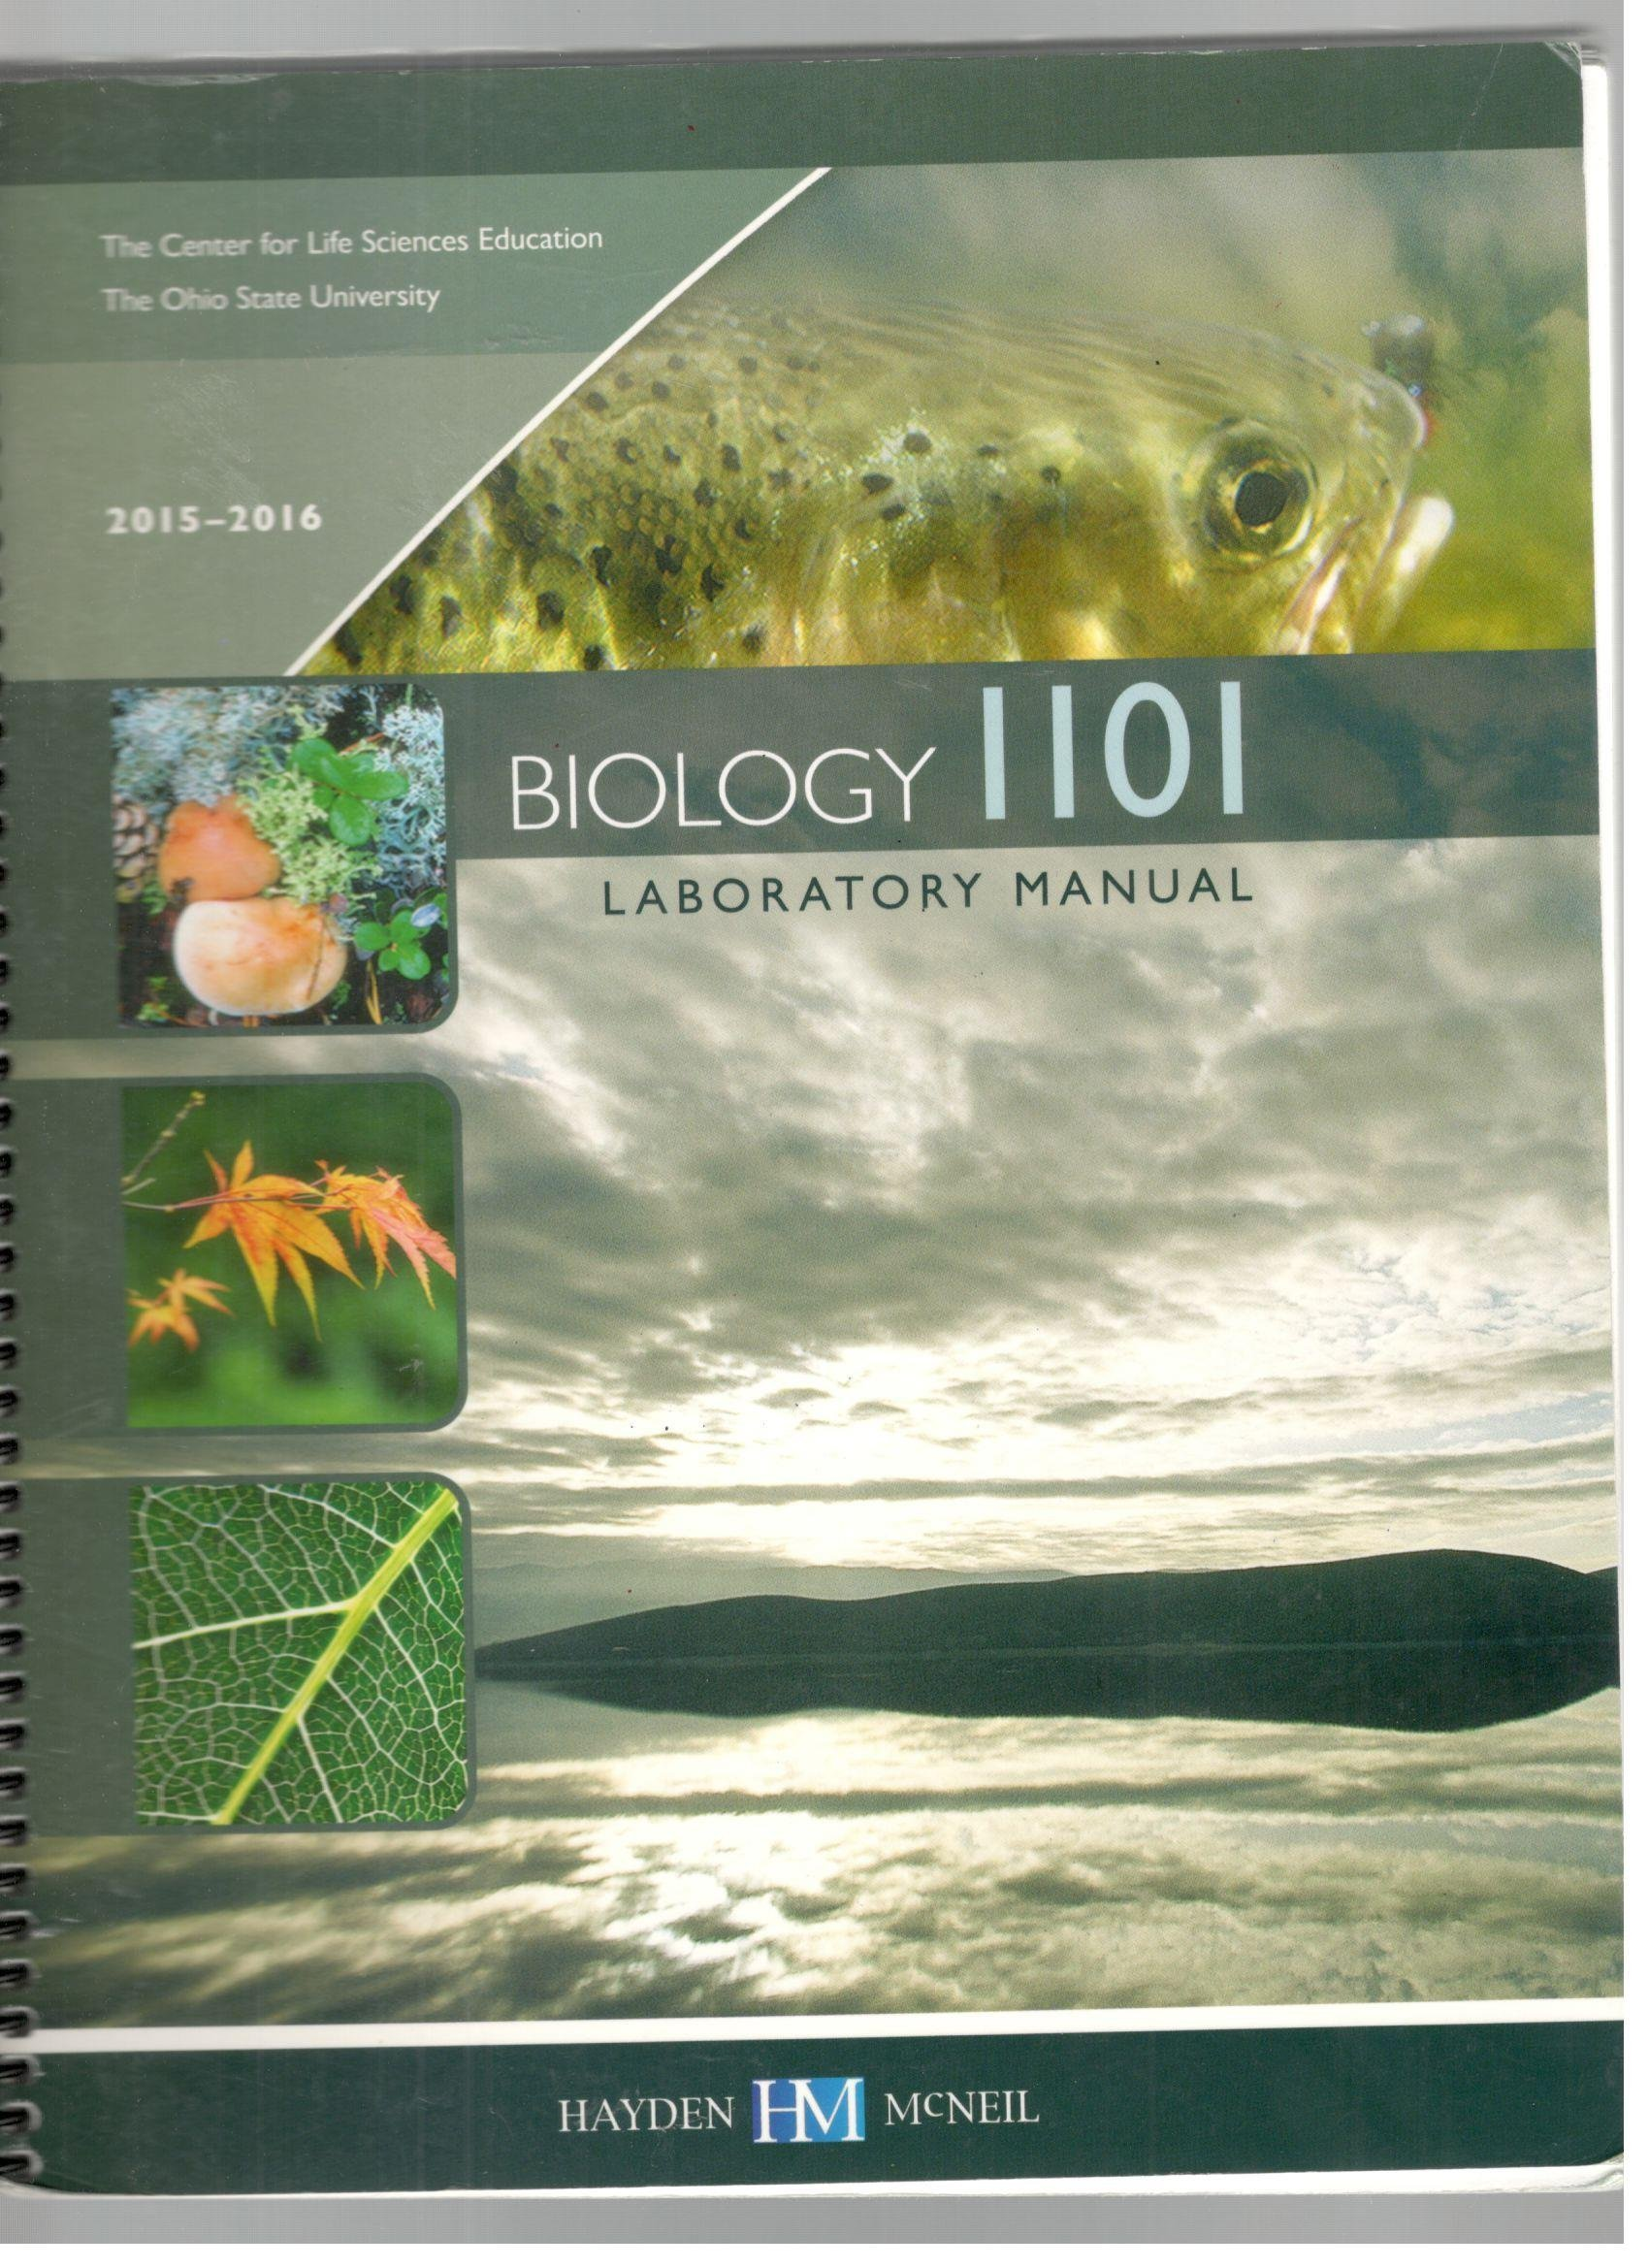 Biology 1101 Laboratory Manual, 2015-2016 The Ohio State University:  9780738074719: Amazon.com: Books